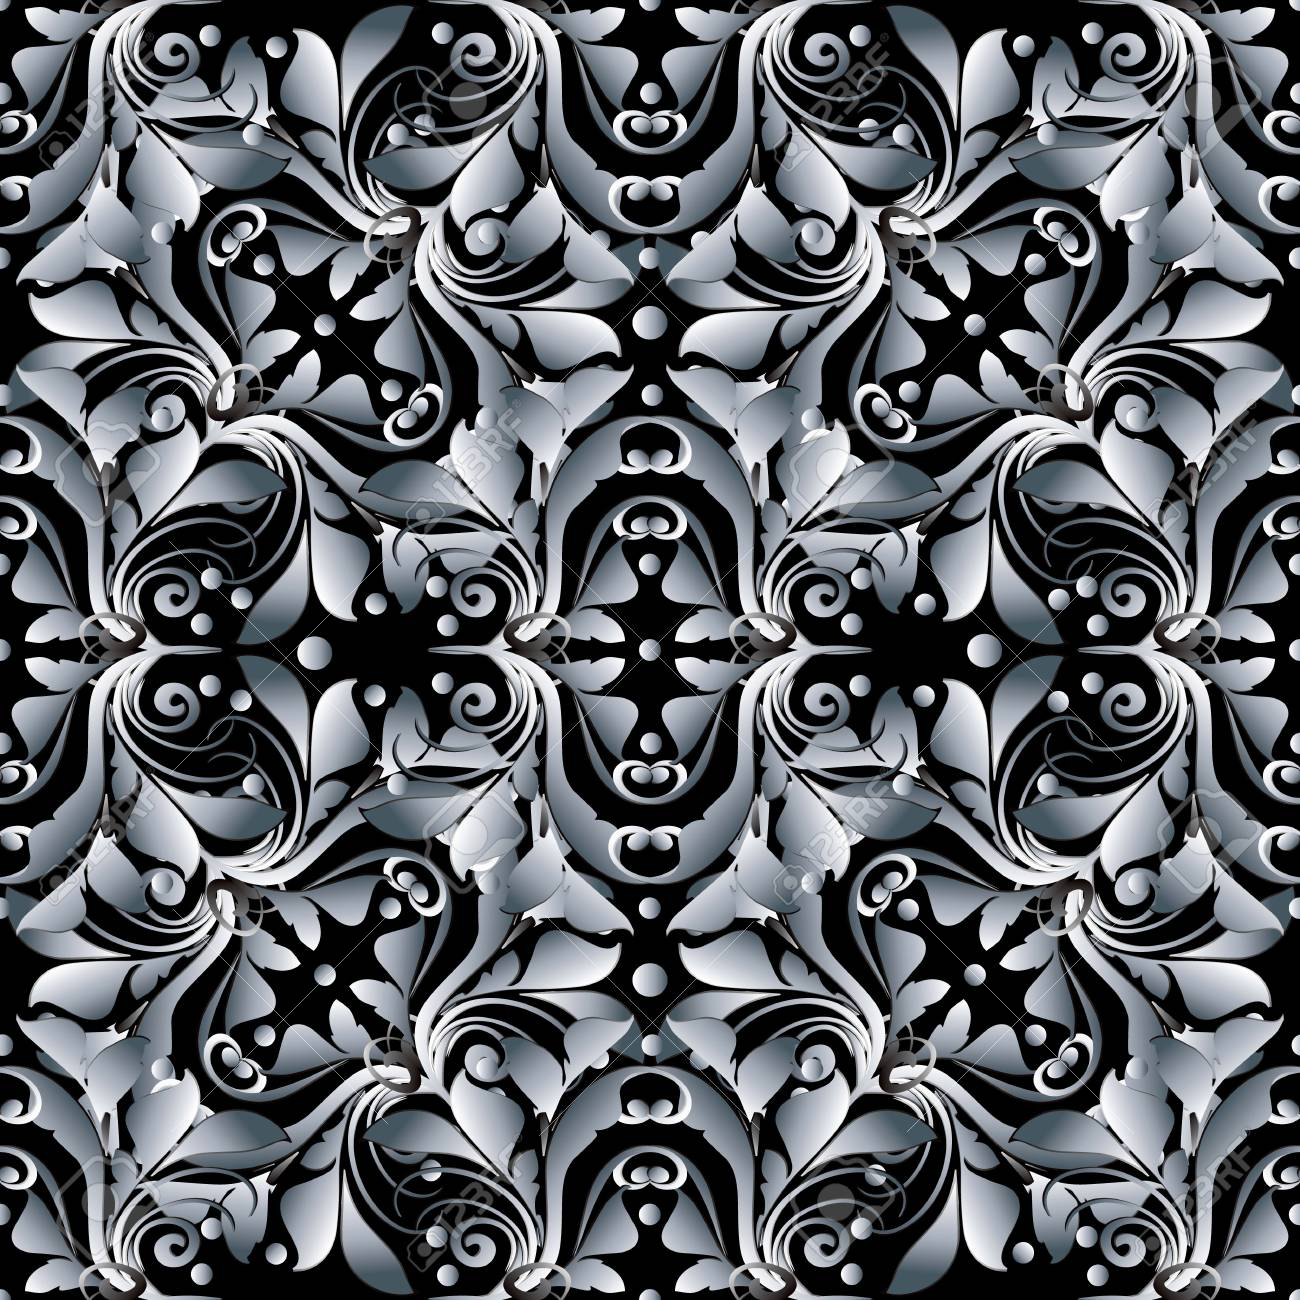 WoowPaper Background 3d Black And White Wallpaper